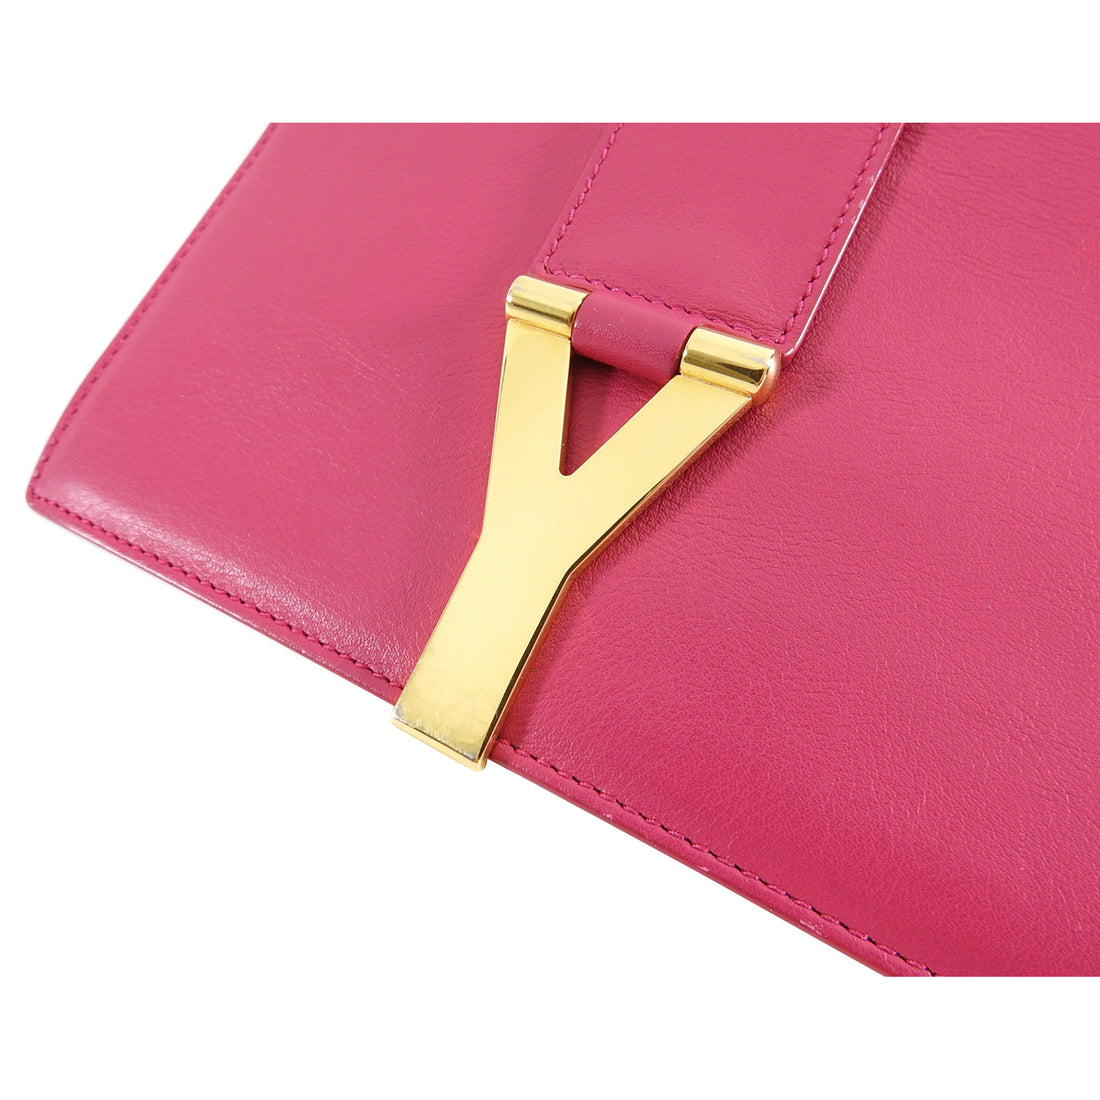 YSL Saint Laurent Pink Mini Sac Y Ligne Crossbody Bag